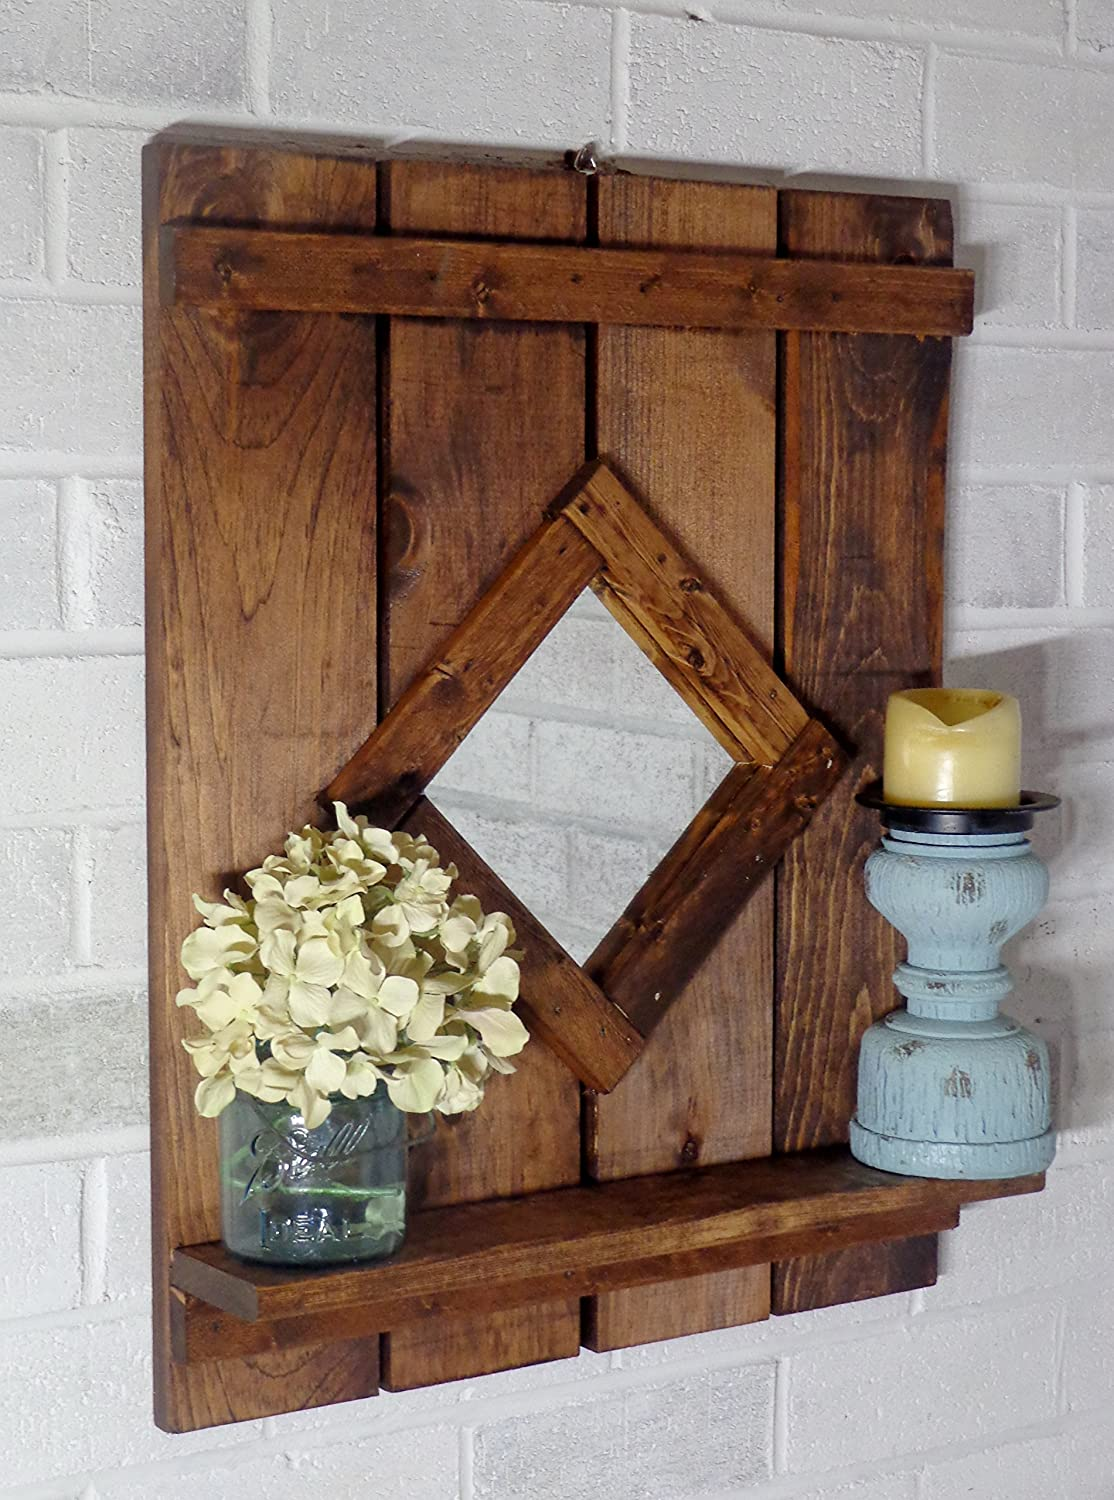 Renewed Decor Diamond Wood Mirror with Shelf - Wall Mirror - Rustic Modern Home - Diamond - Home Decor - Mirror - Home Decor 19